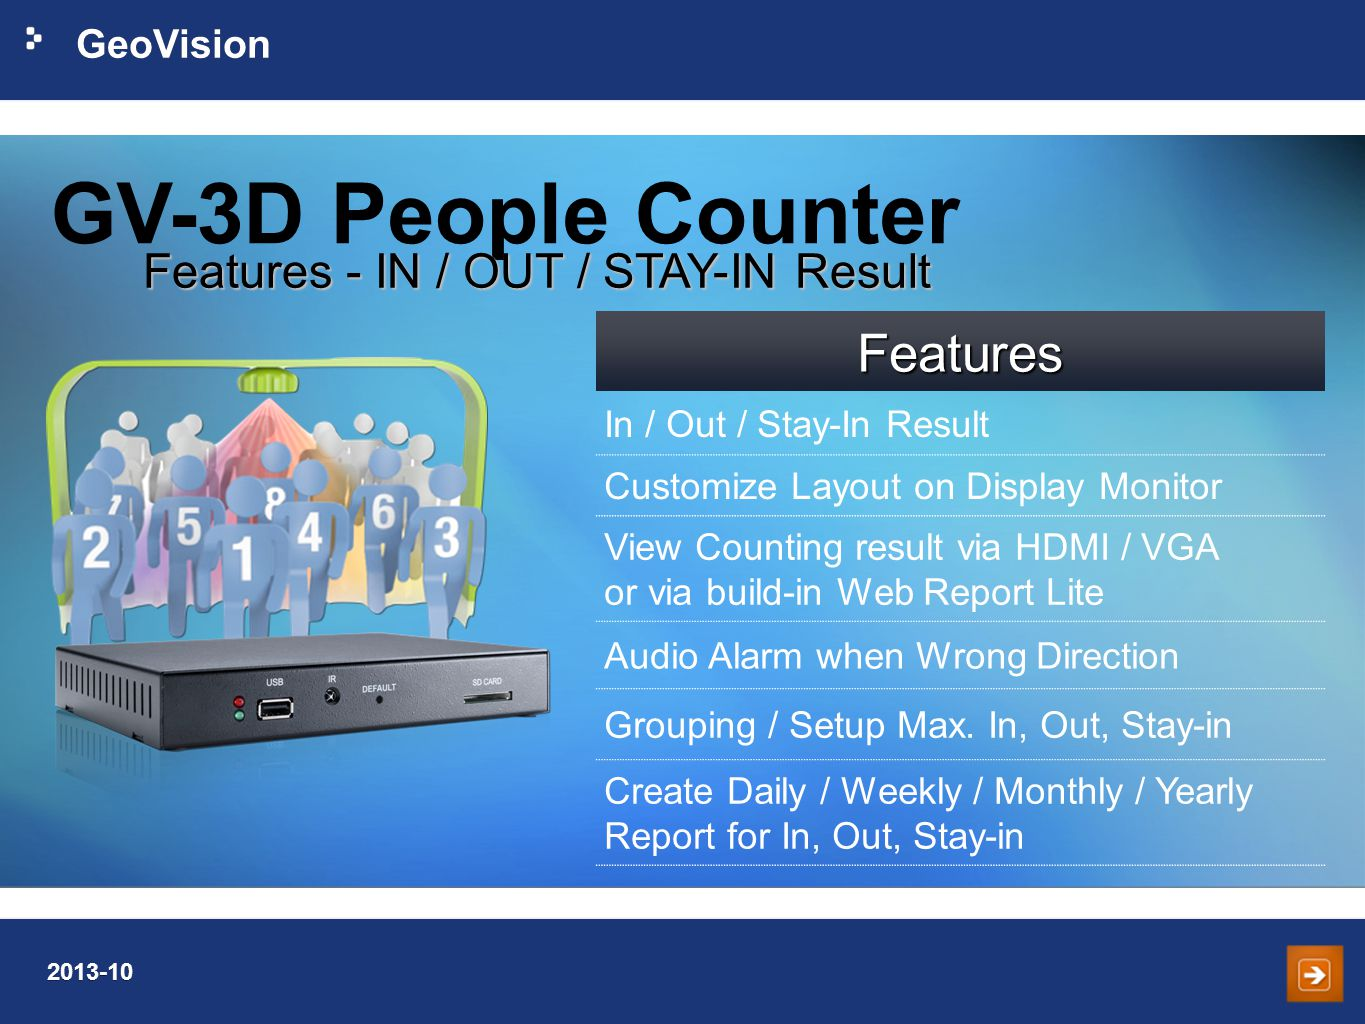 GV-3D People Counter Features Features - IN / OUT / STAY-IN Result